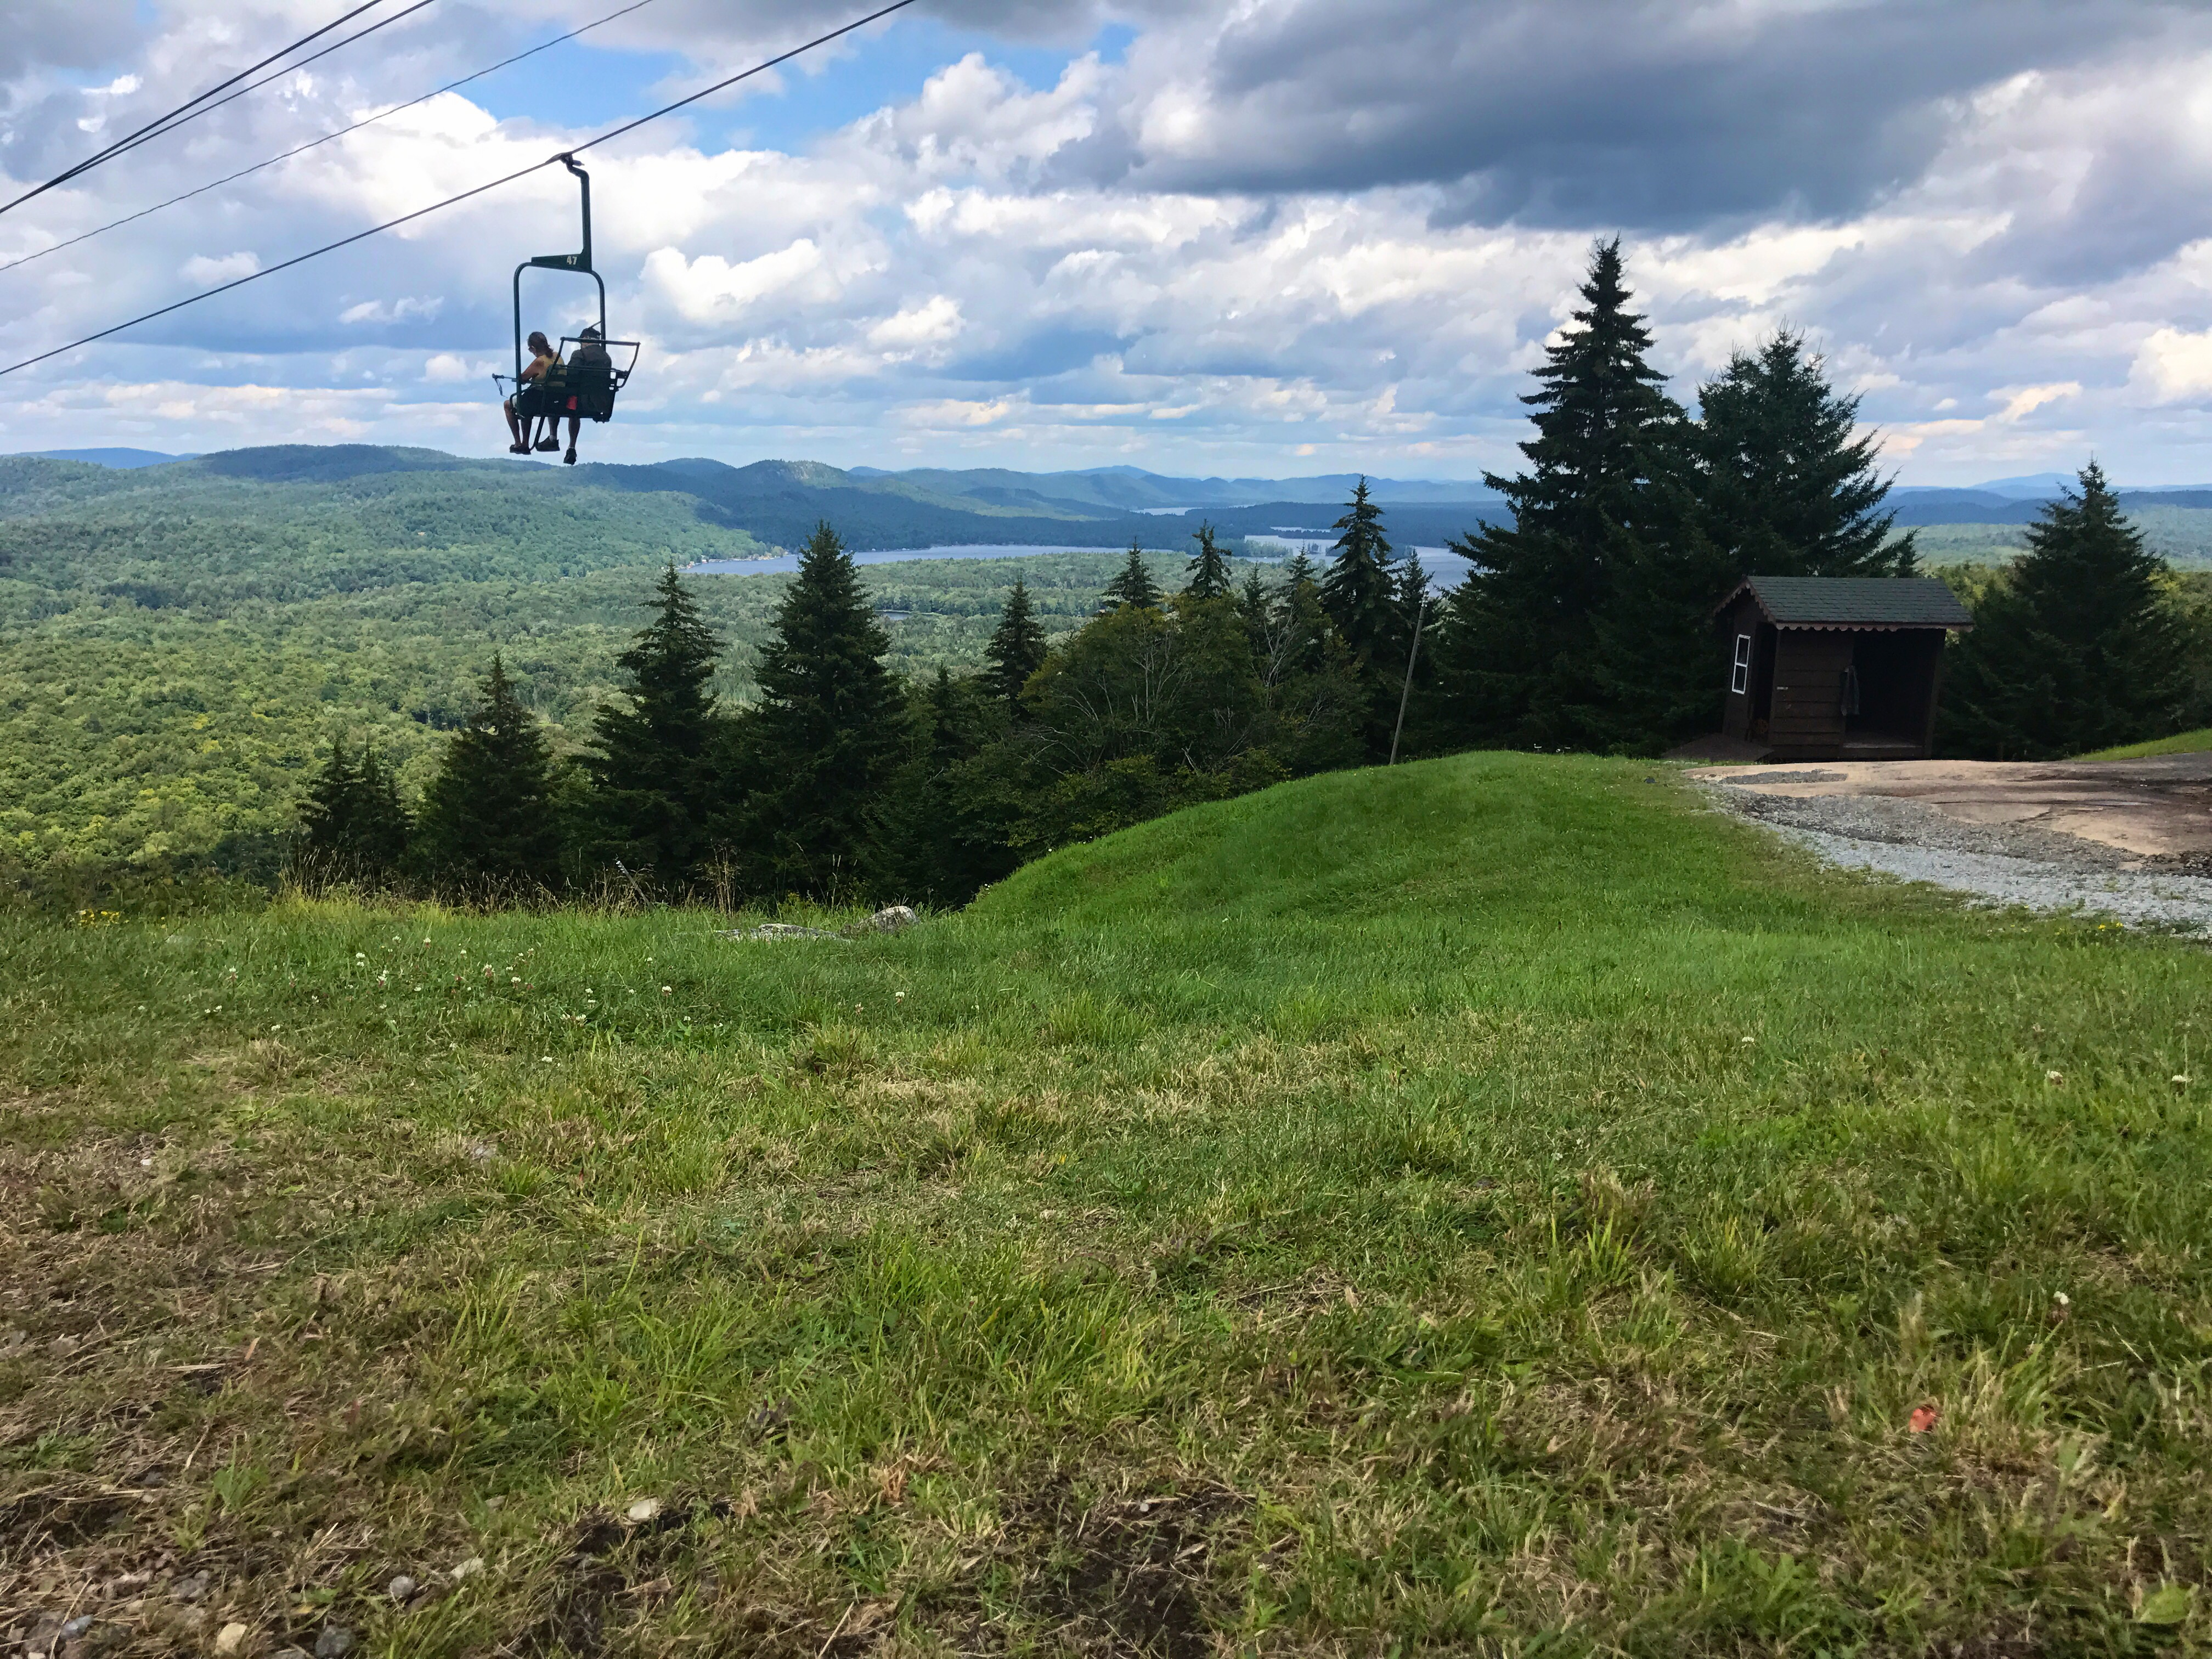 View from McCauley Mountain. The picture portrays two people enjoying a ride on the chair lift located at McCauley Mountain, and a view of the mountains, trees, and lakes.